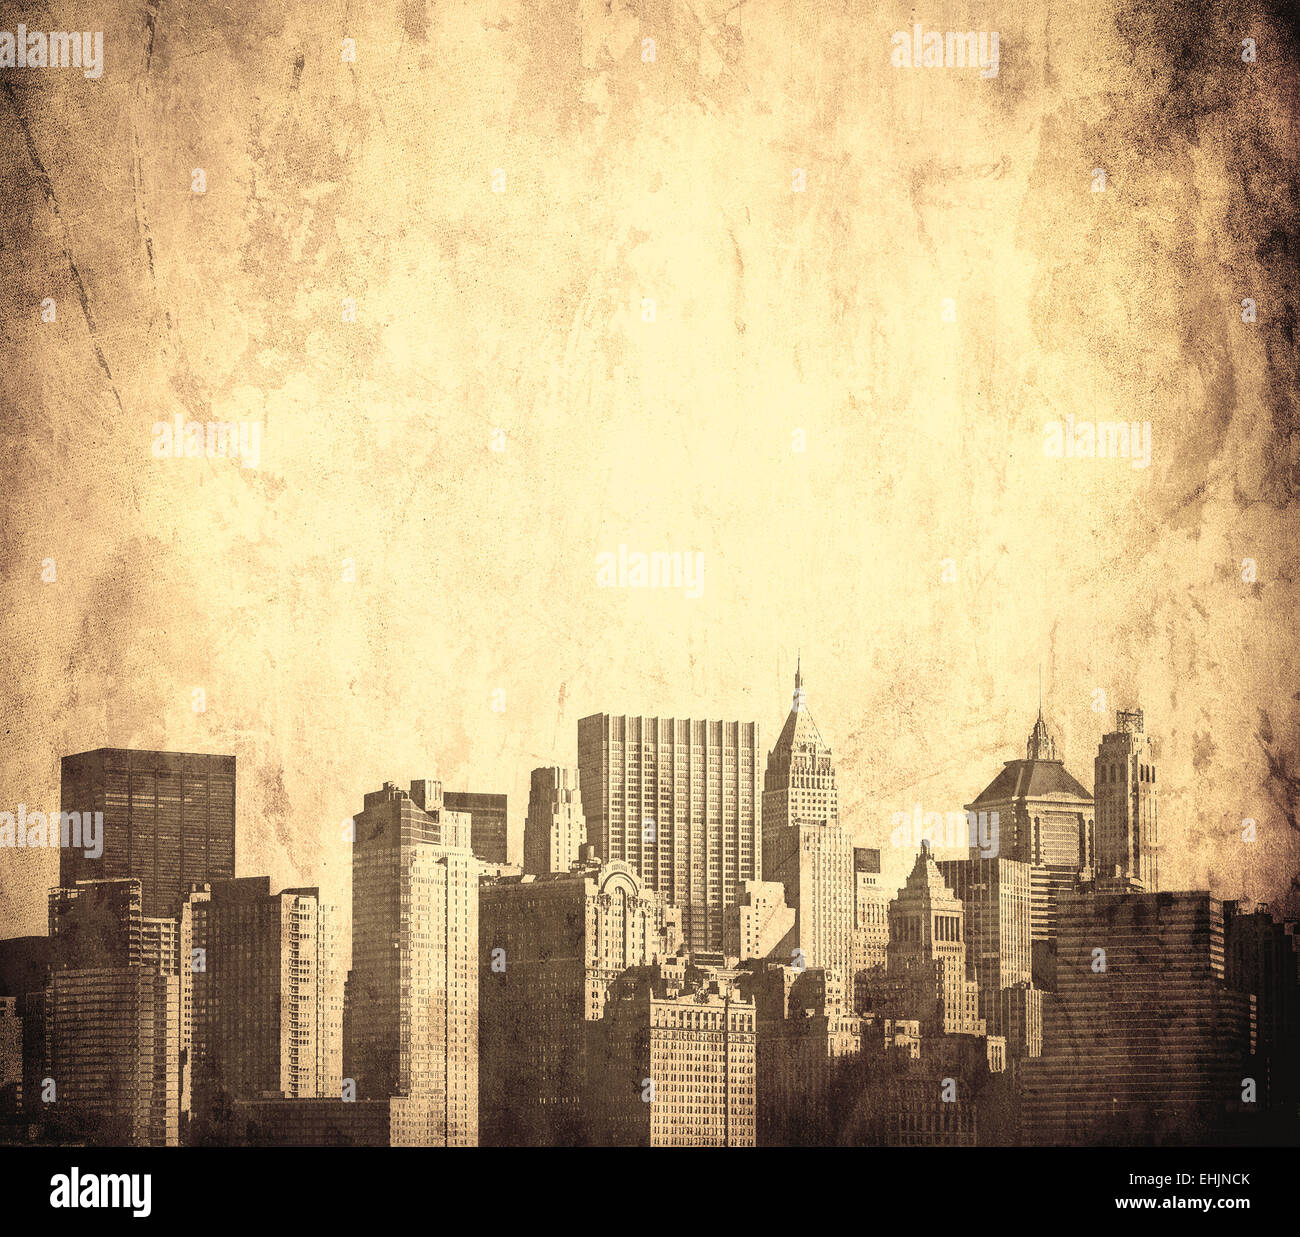 New York Postcard Stockfotos & New York Postcard Bilder - Seite 2 ...